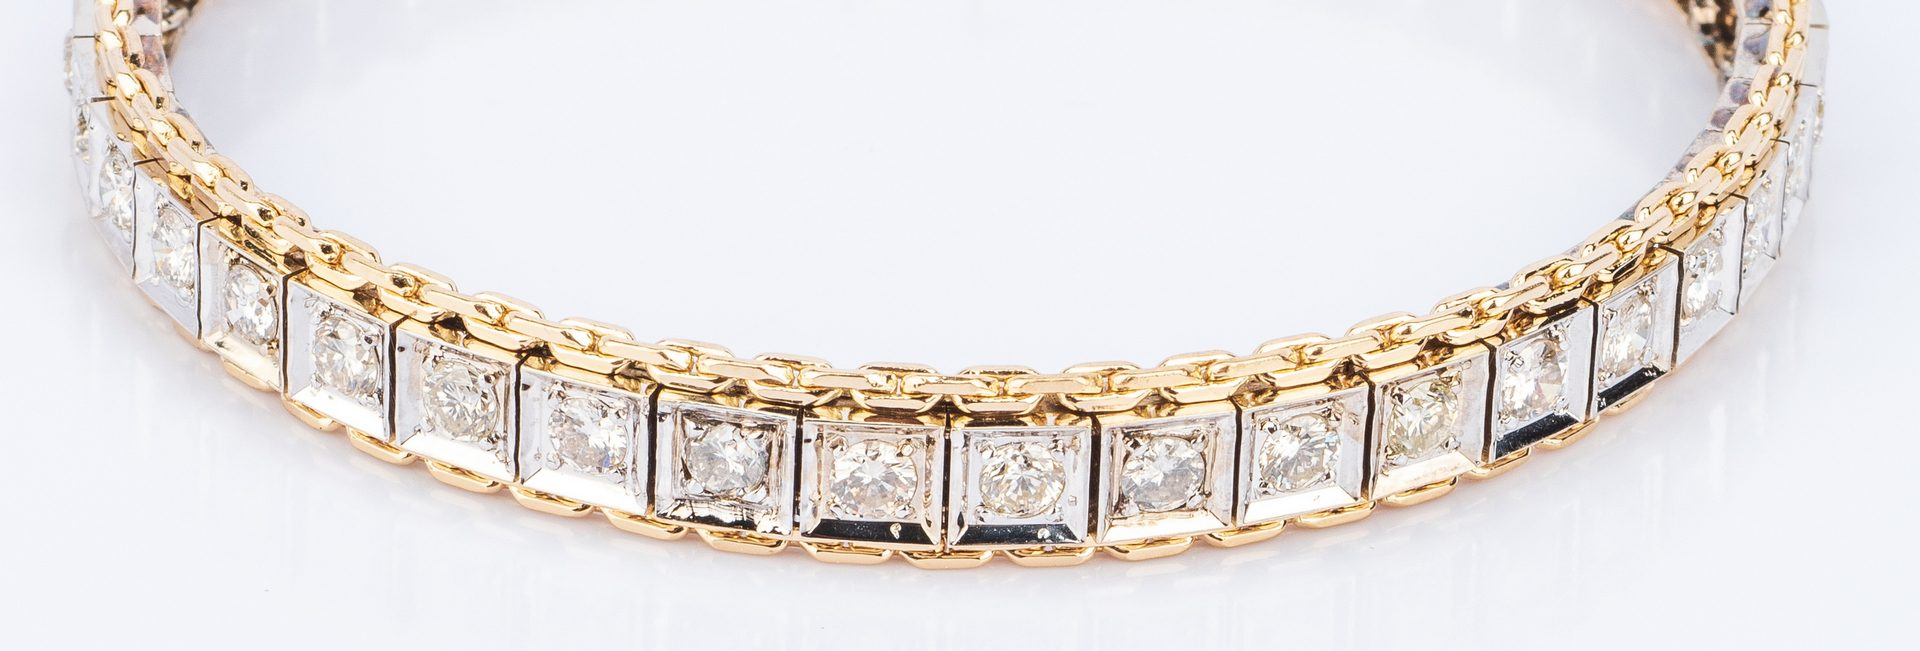 Lot 25: 14K Diamond Bracelet